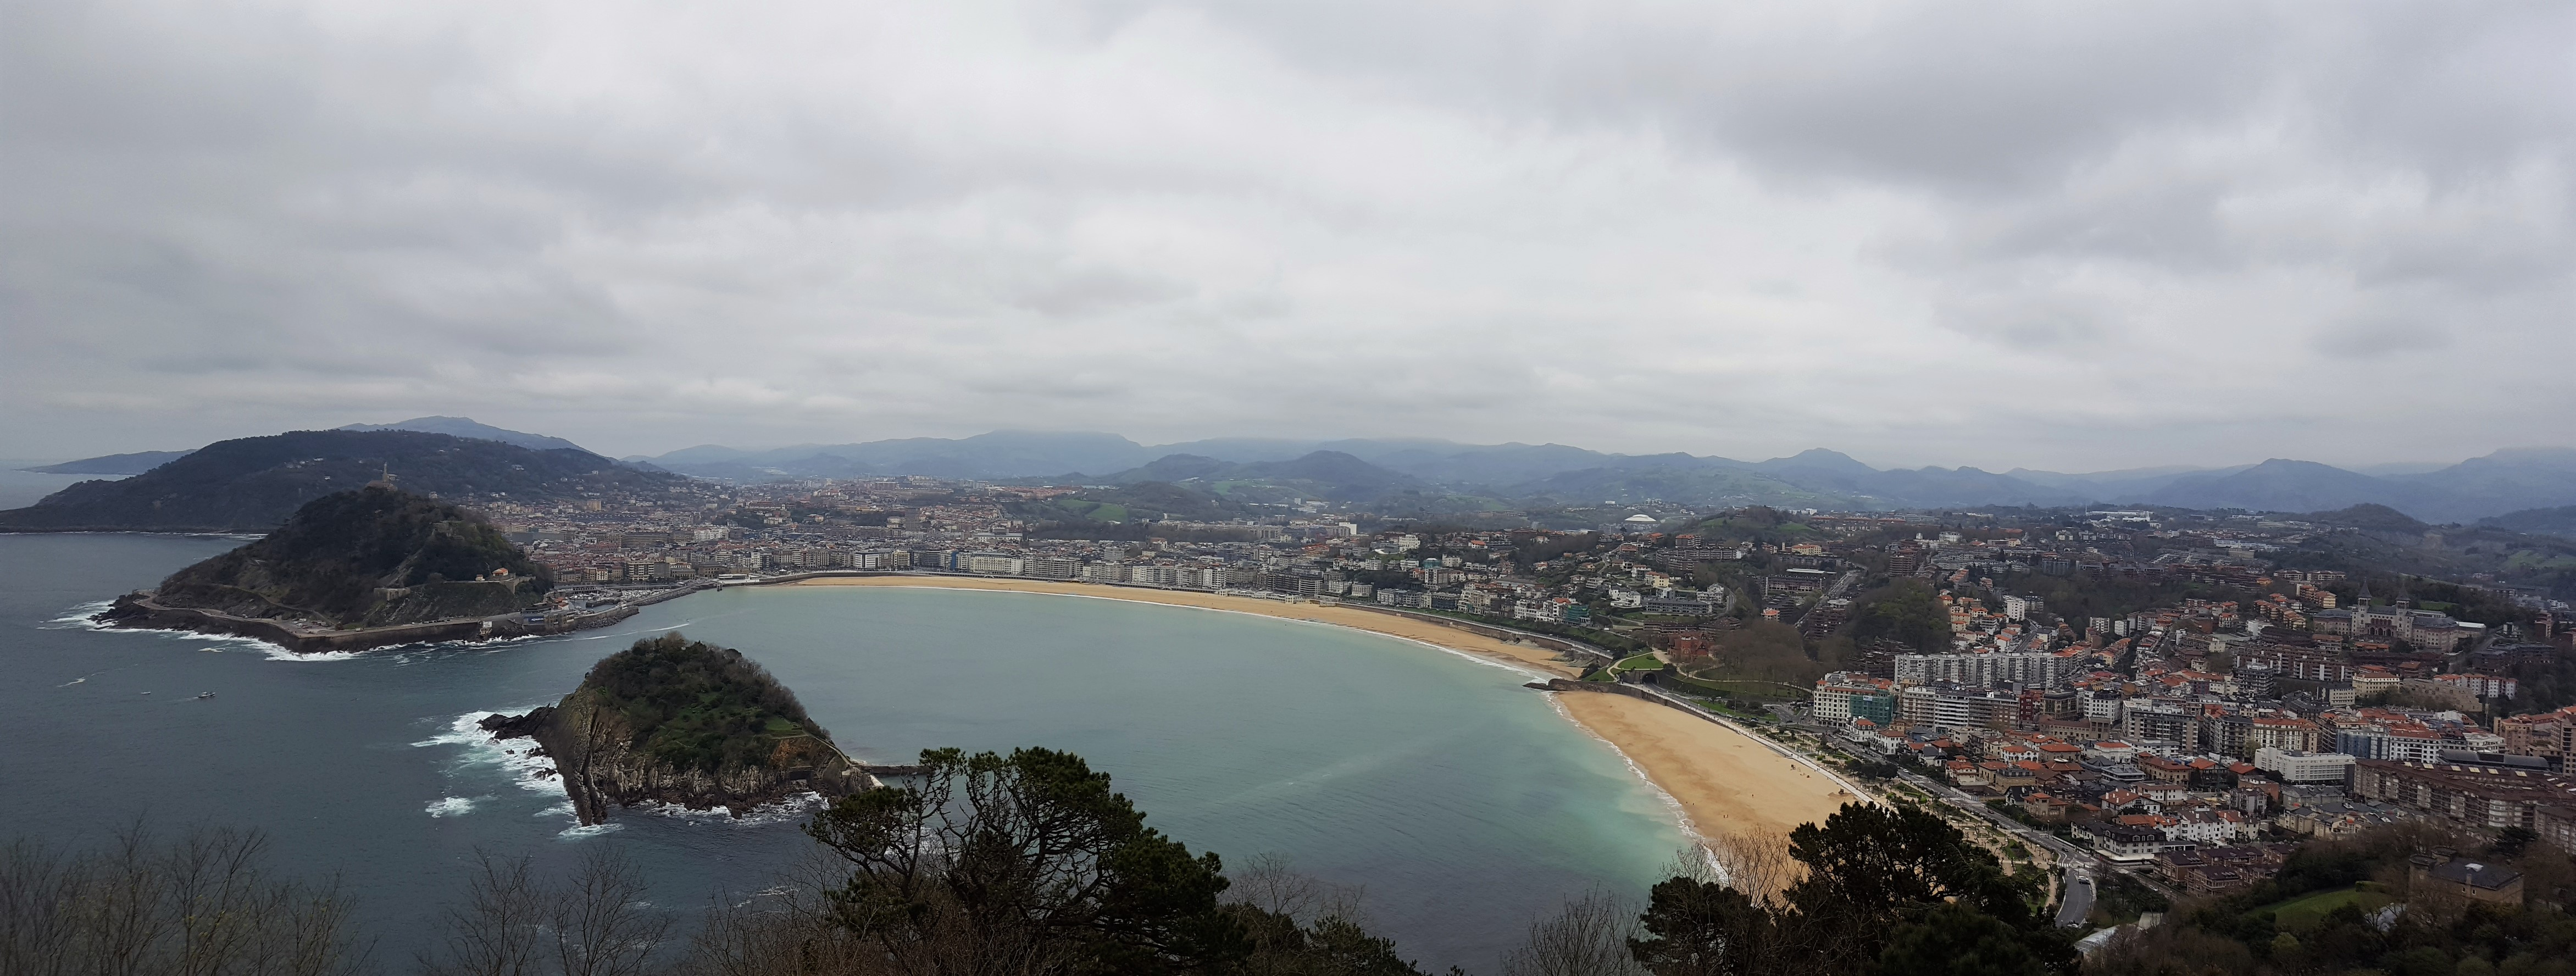 3 Things To Do in San Sebastián